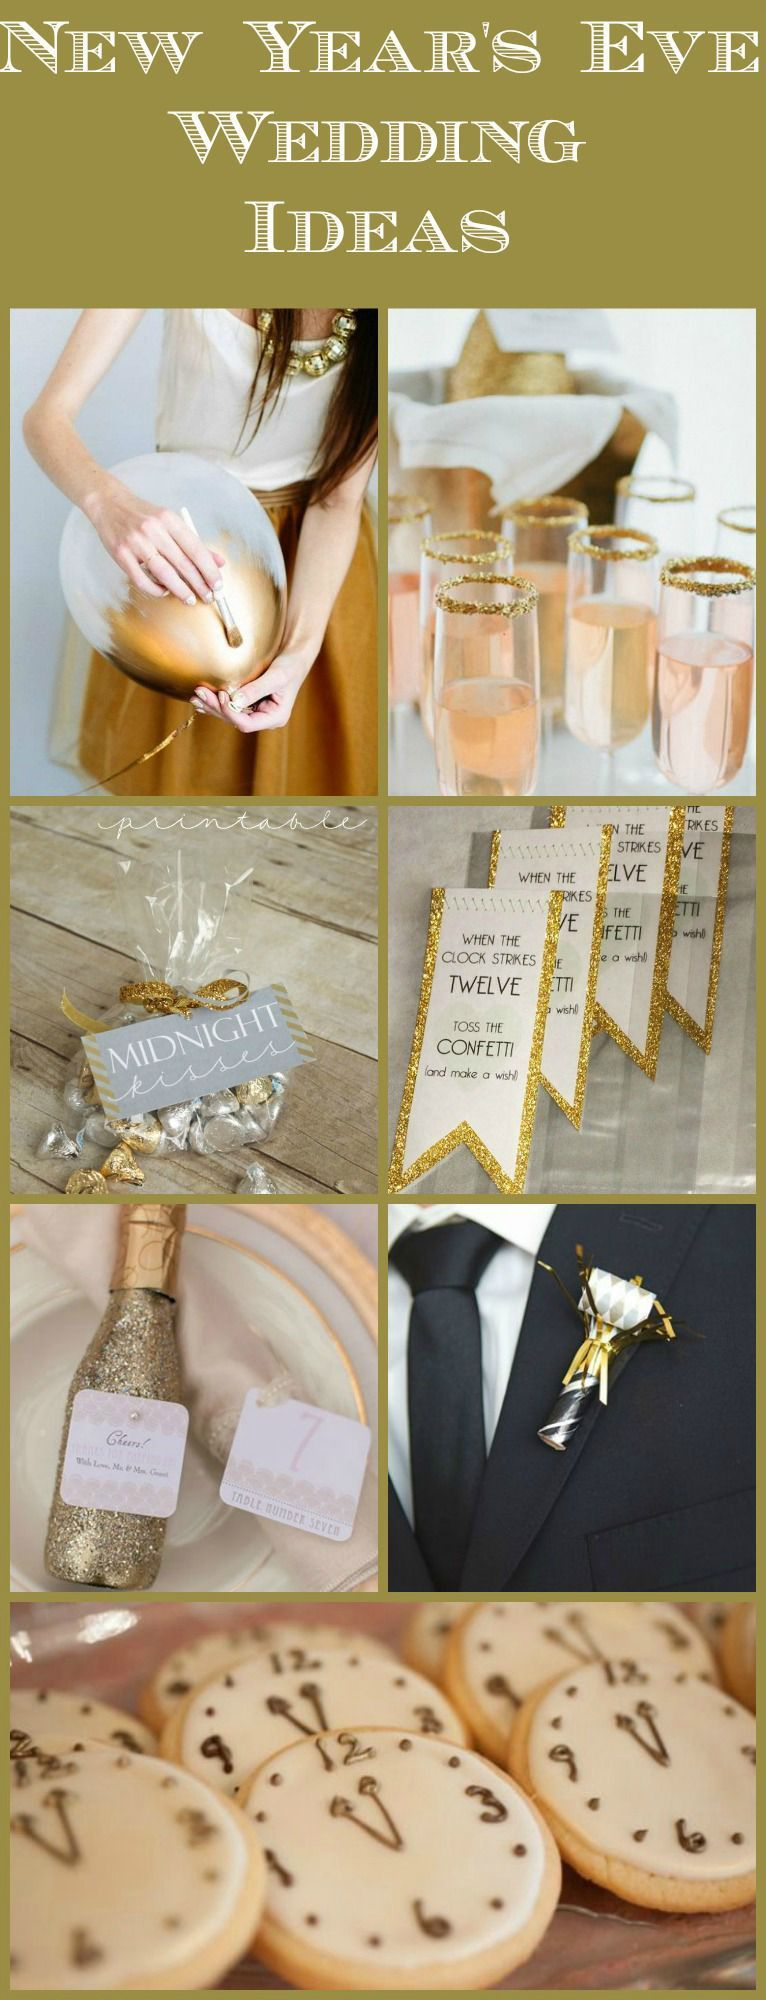 10 New Years Wedding Ideas - Rustic Wedding Chic